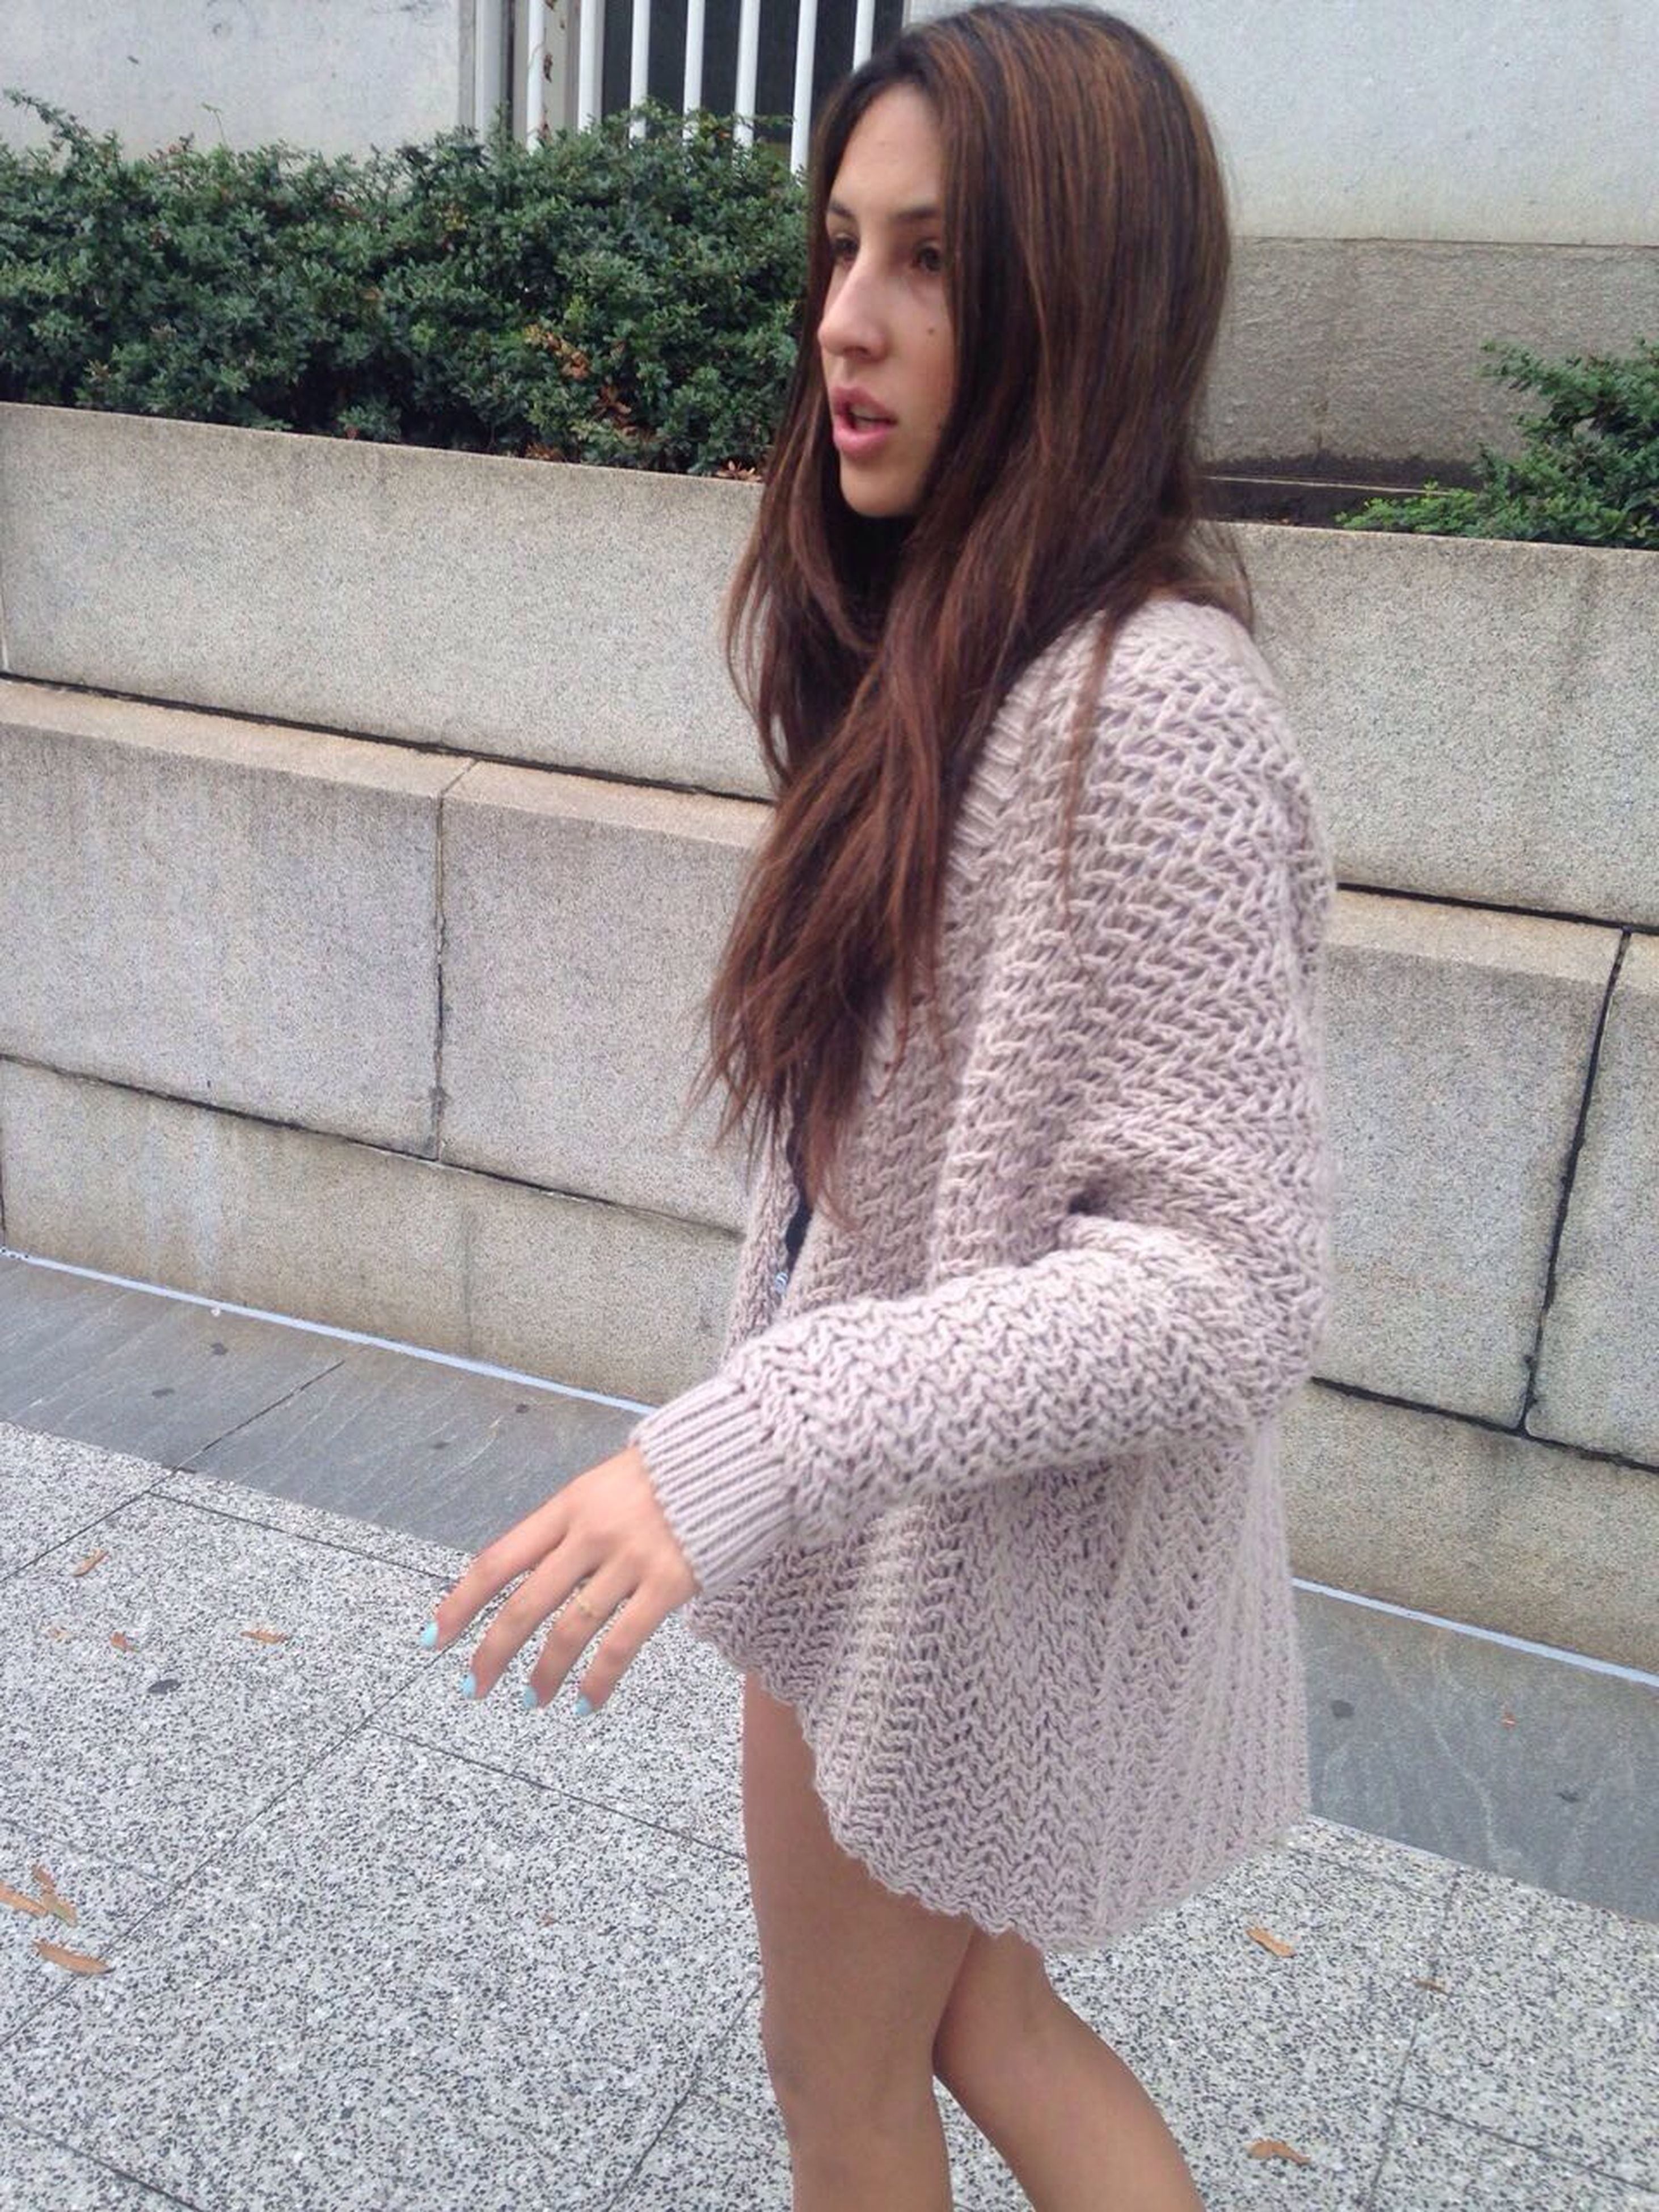 young adult, young women, person, lifestyles, casual clothing, long hair, standing, leisure activity, portrait, front view, looking at camera, three quarter length, fashion, medium-length hair, fashionable, sitting